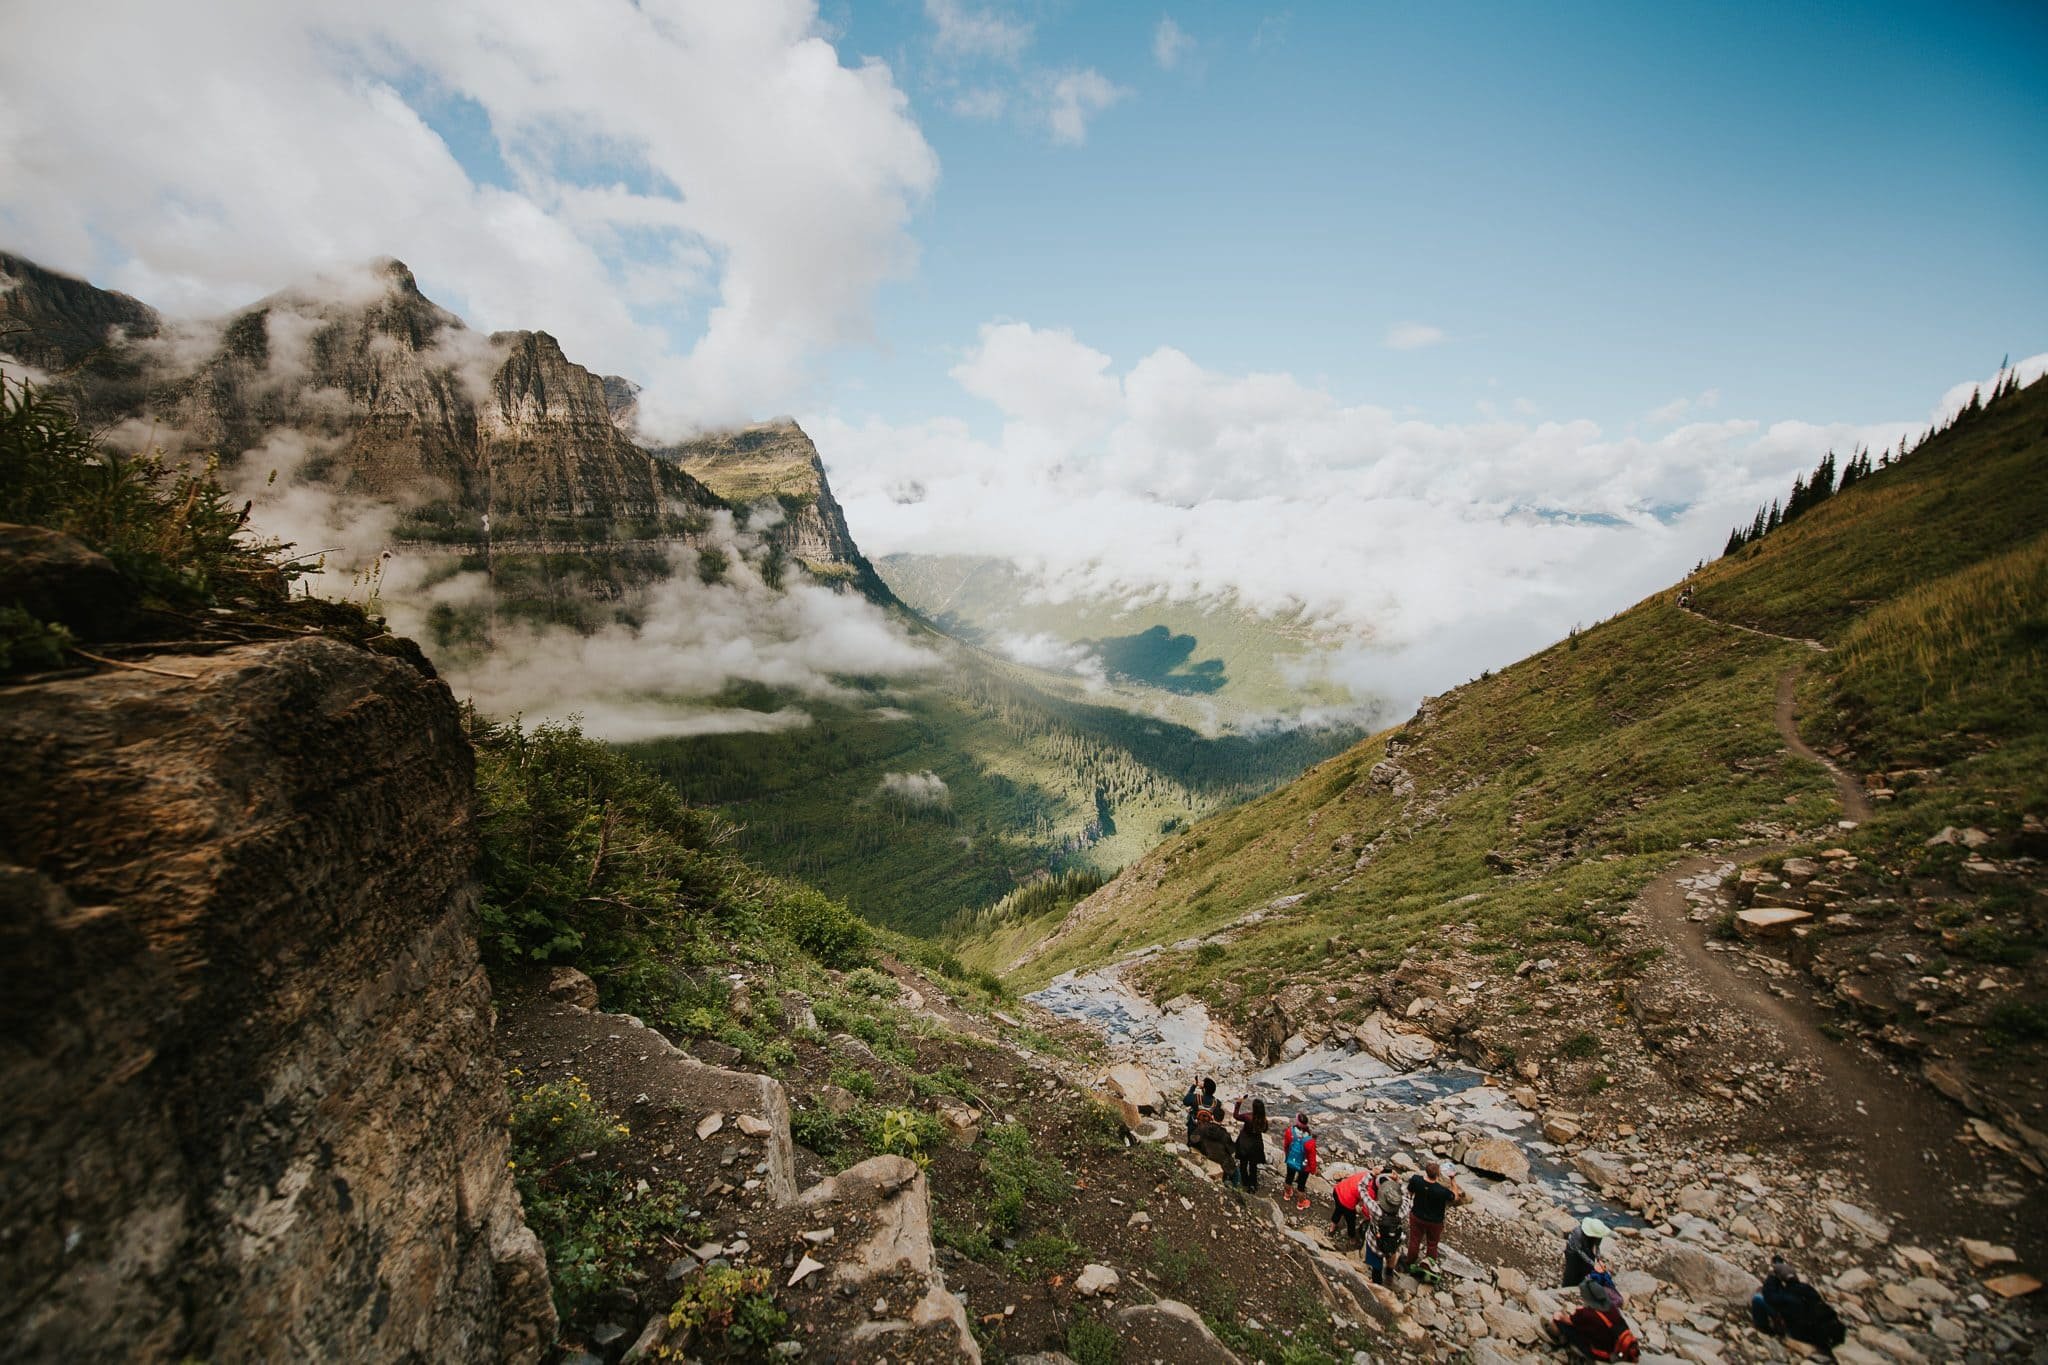 Hikes at Glacier National Park